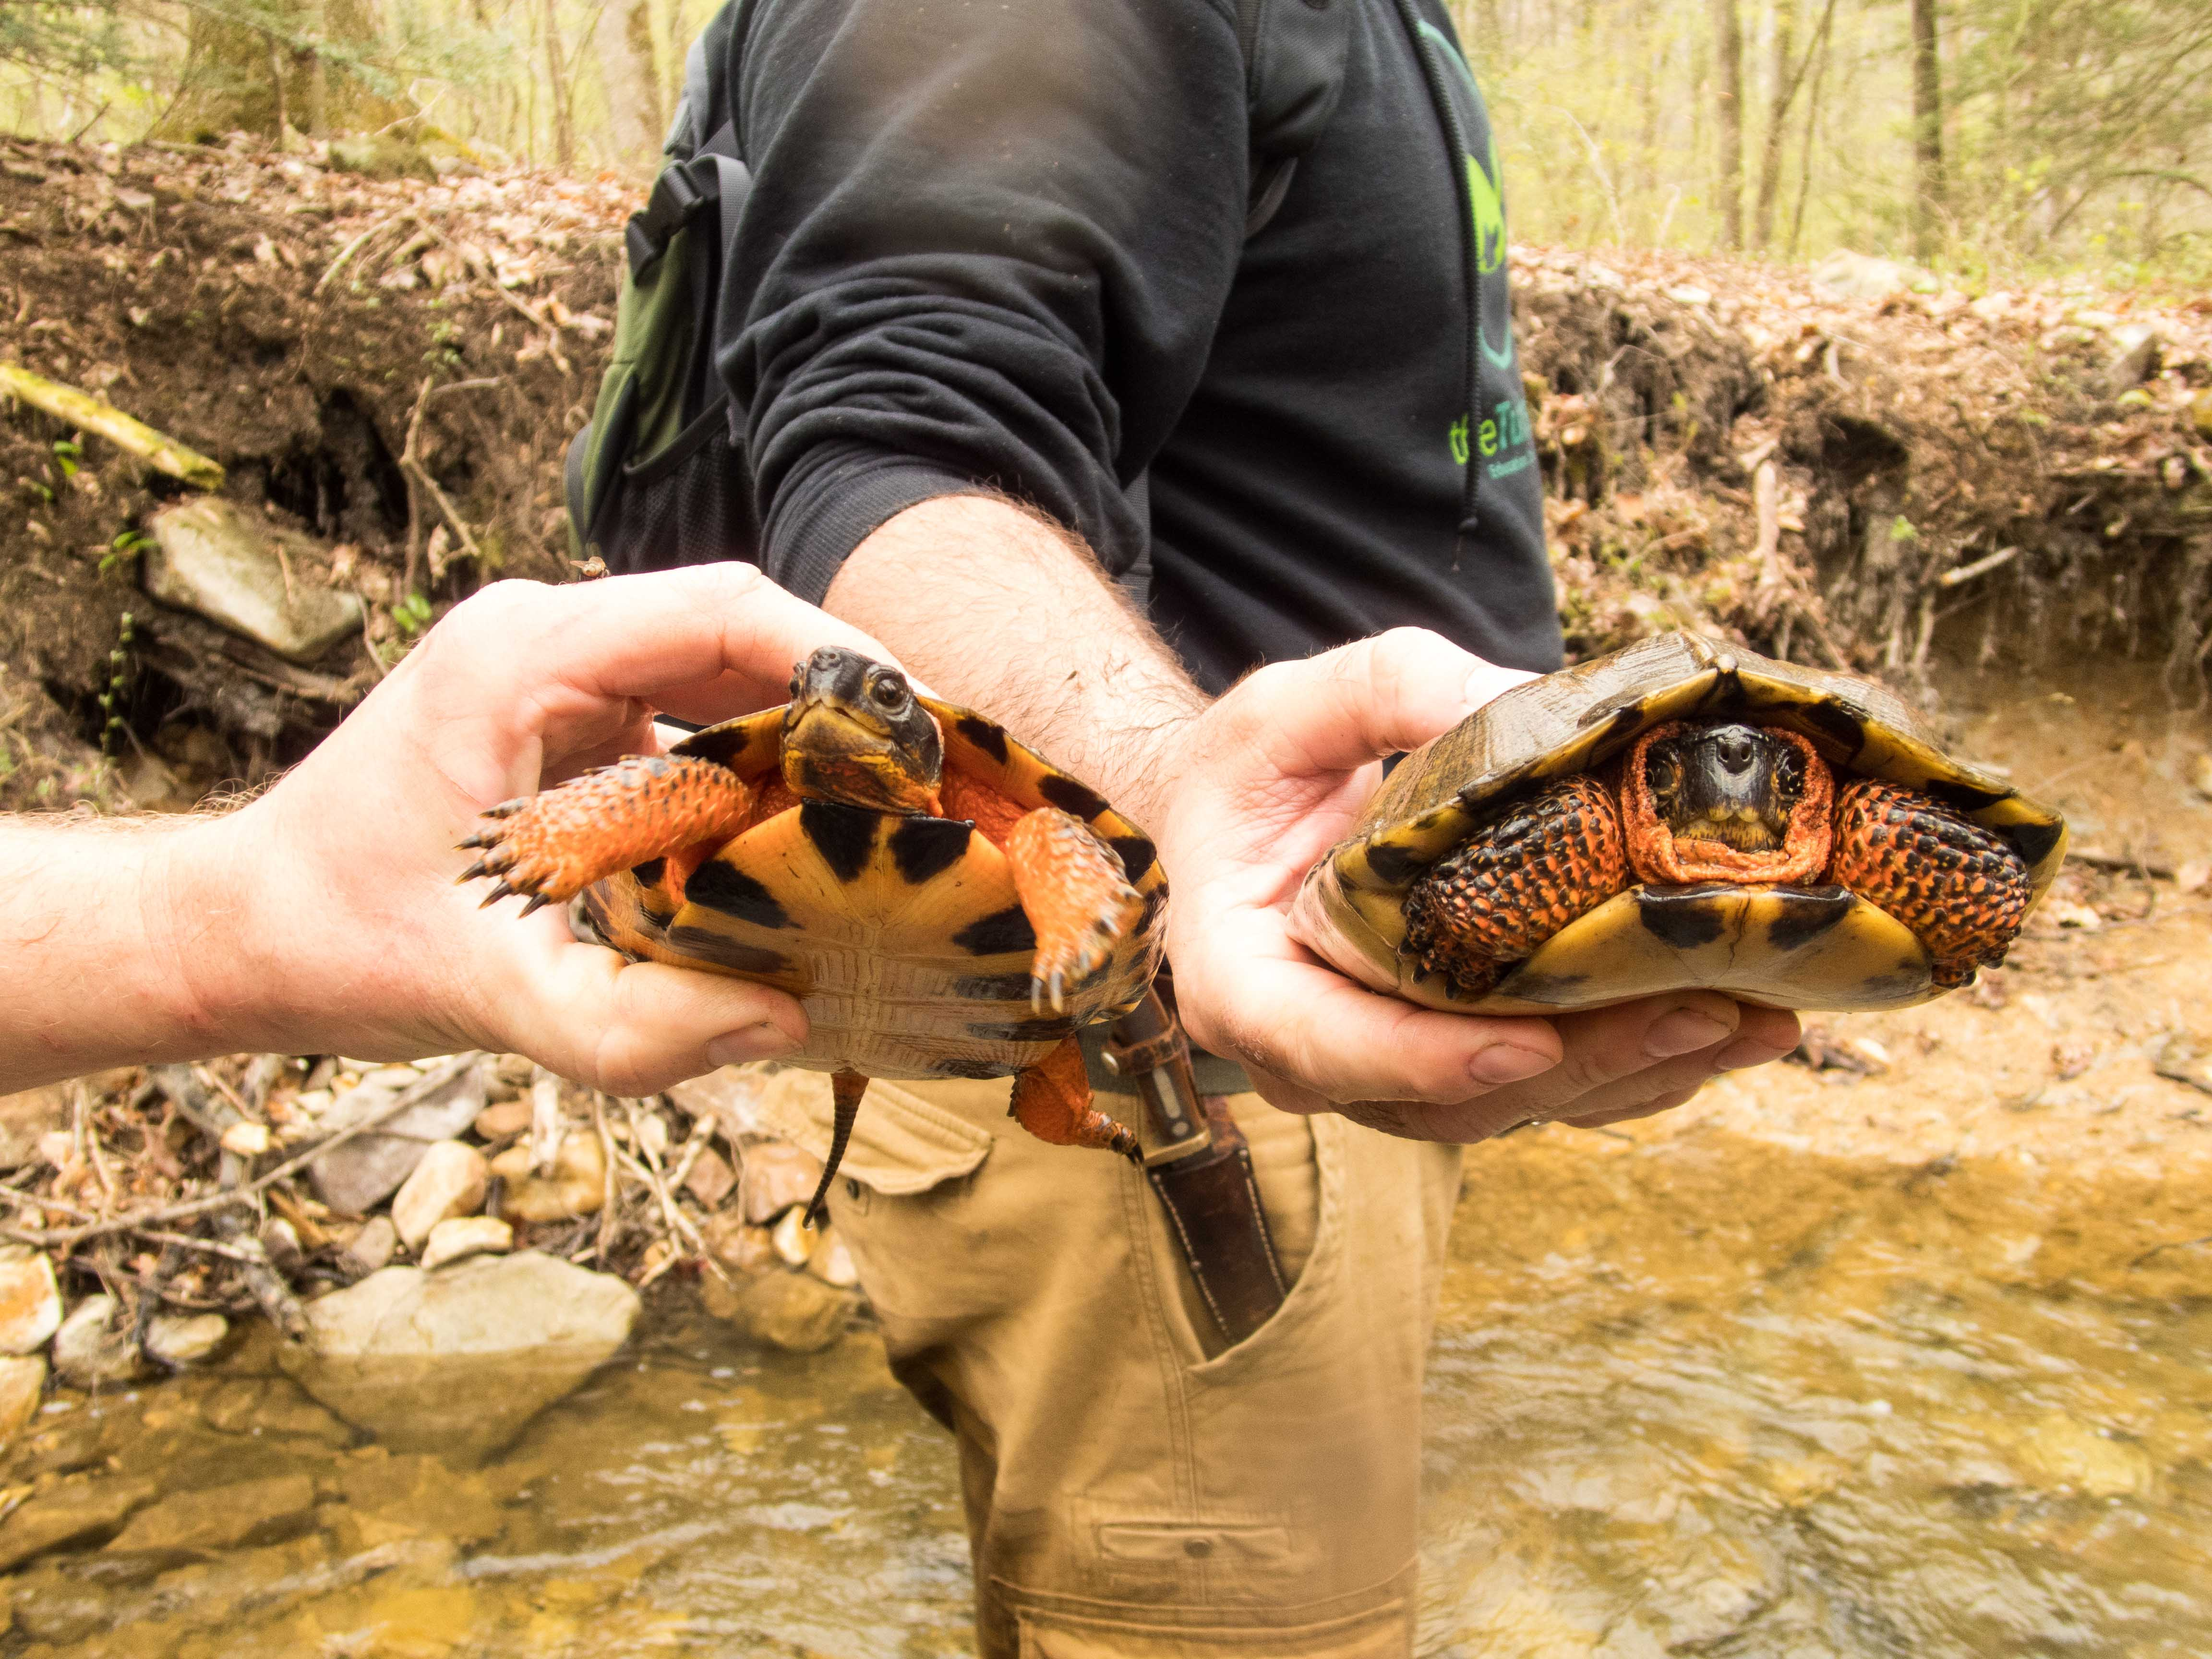 Adult Male and juvenile Glyptemys insculpta (Wood Turtle), Lebanon County, PA